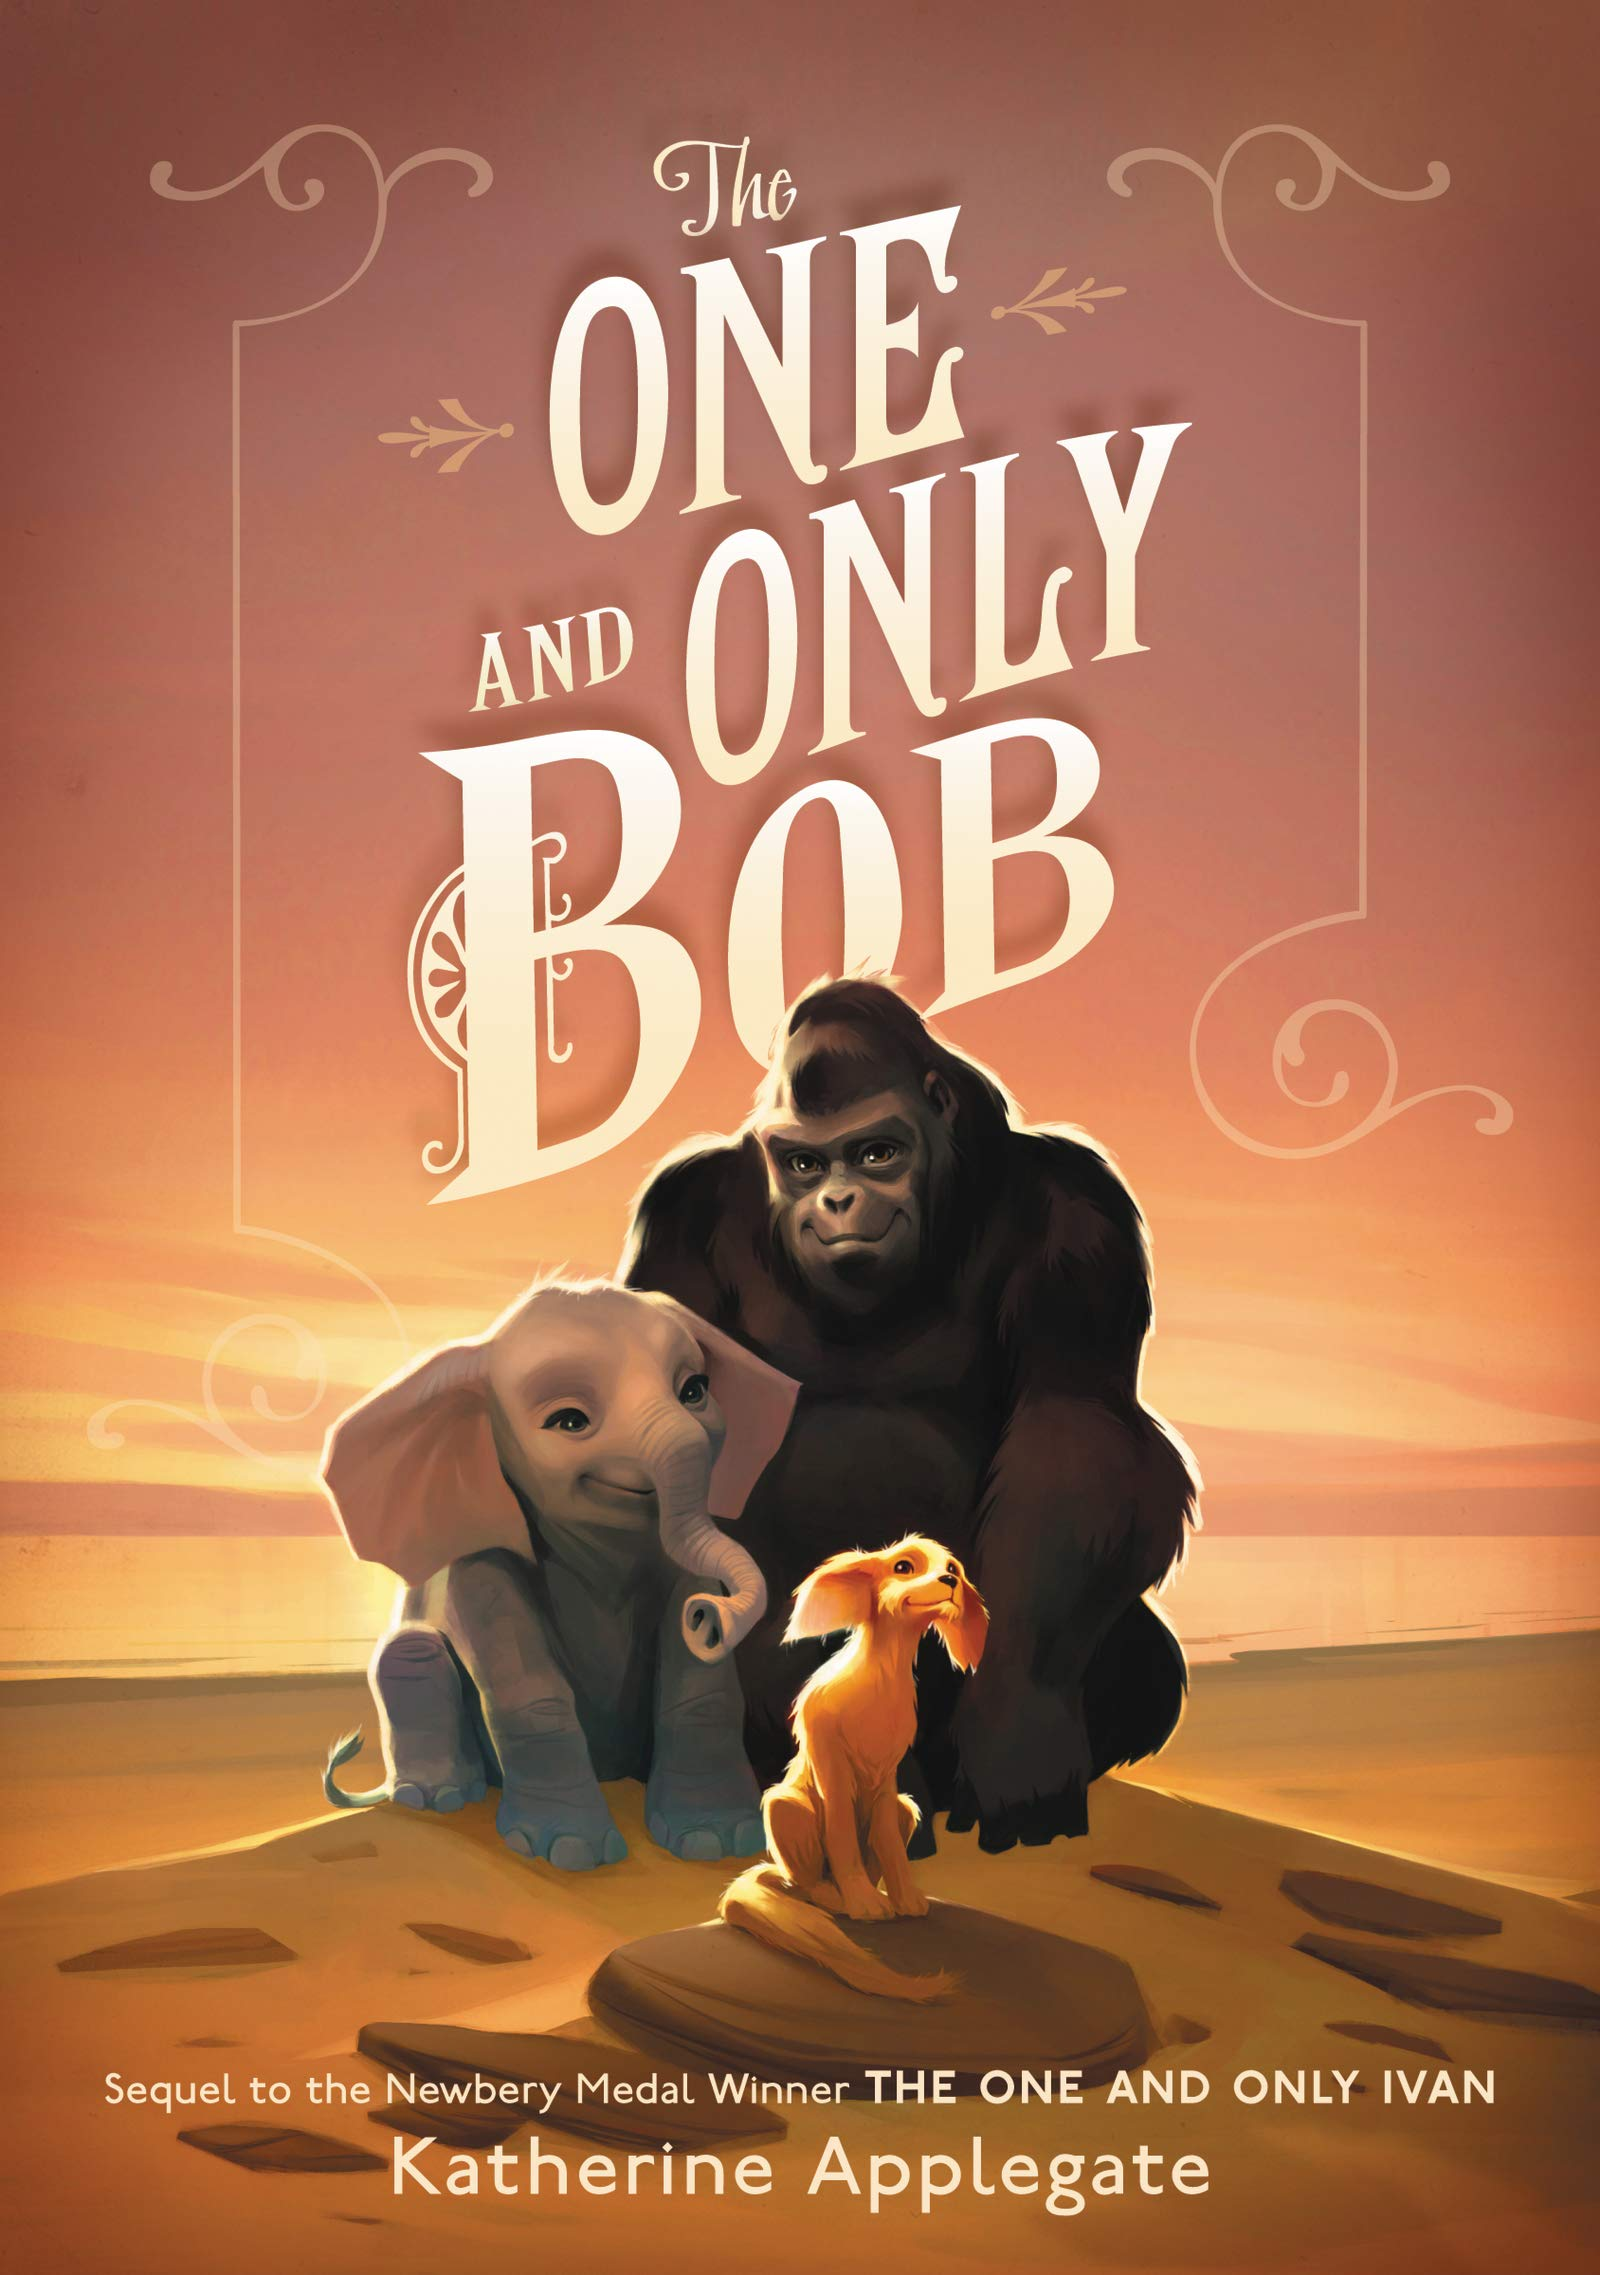 The One and Only Bob (One and Only Ivan): Applegate, Katherine, Castelao,  Patricia: 9780062991317: Amazon.com: Books